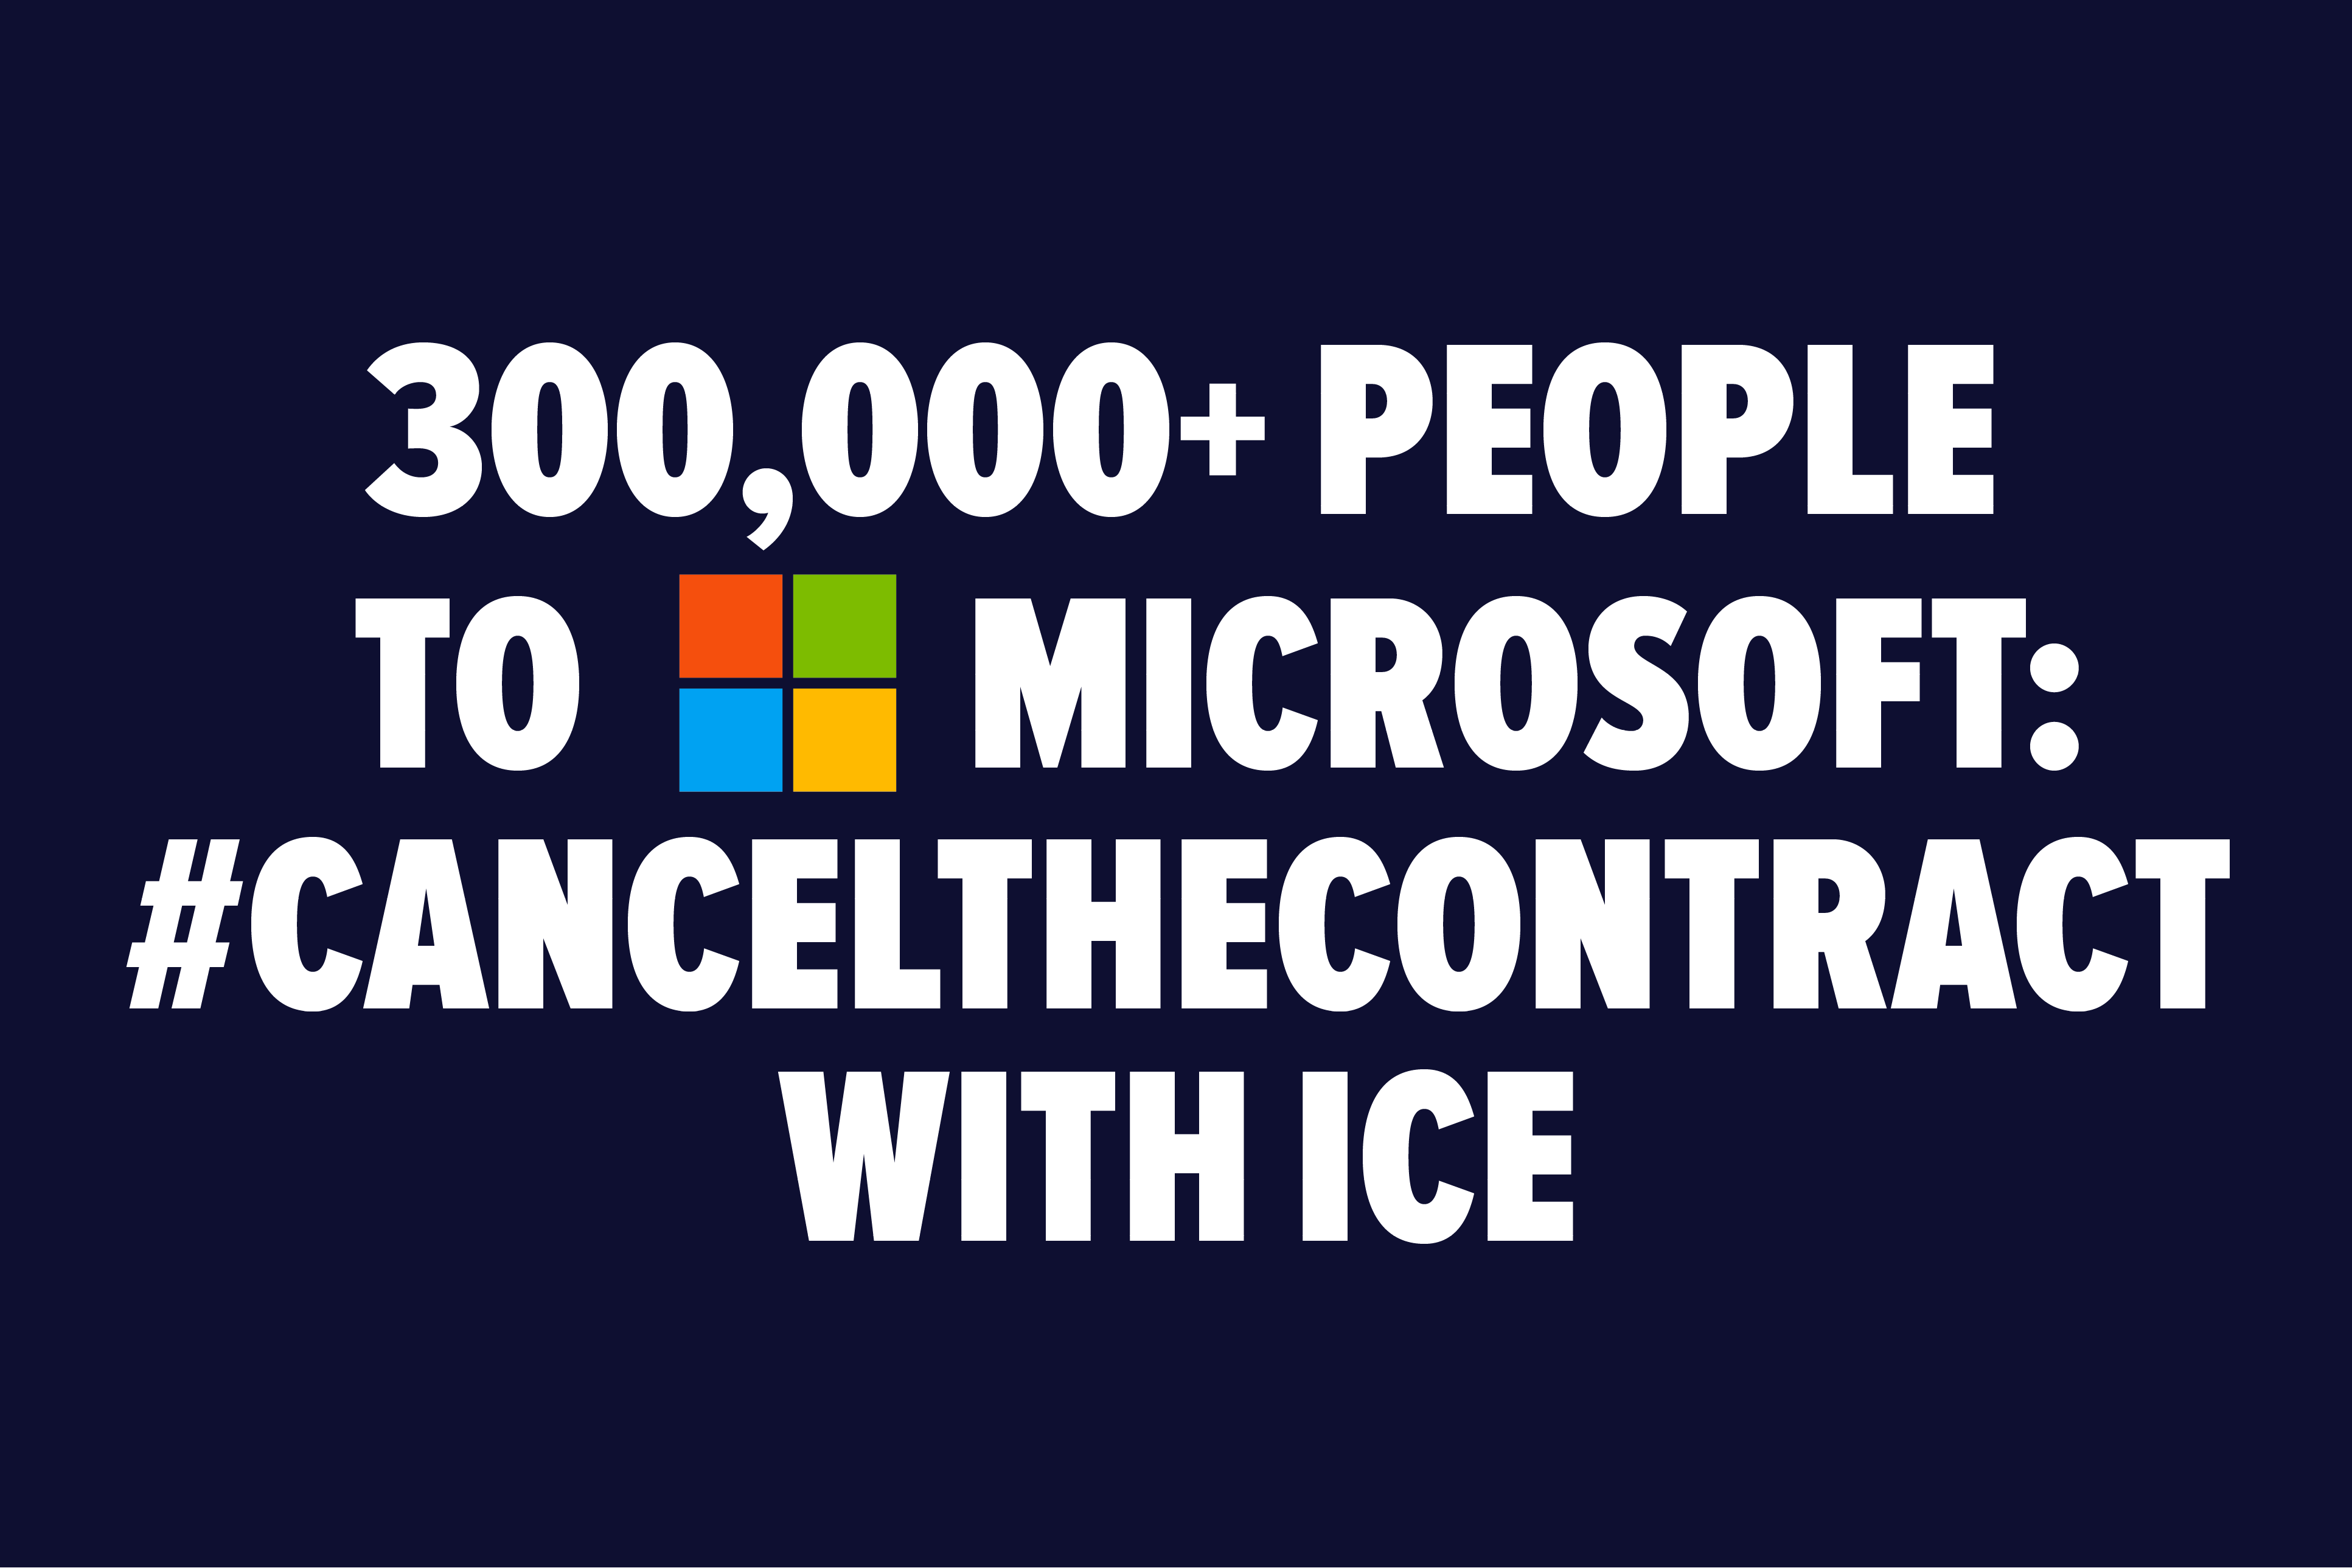 #CancelTheContract with ICE